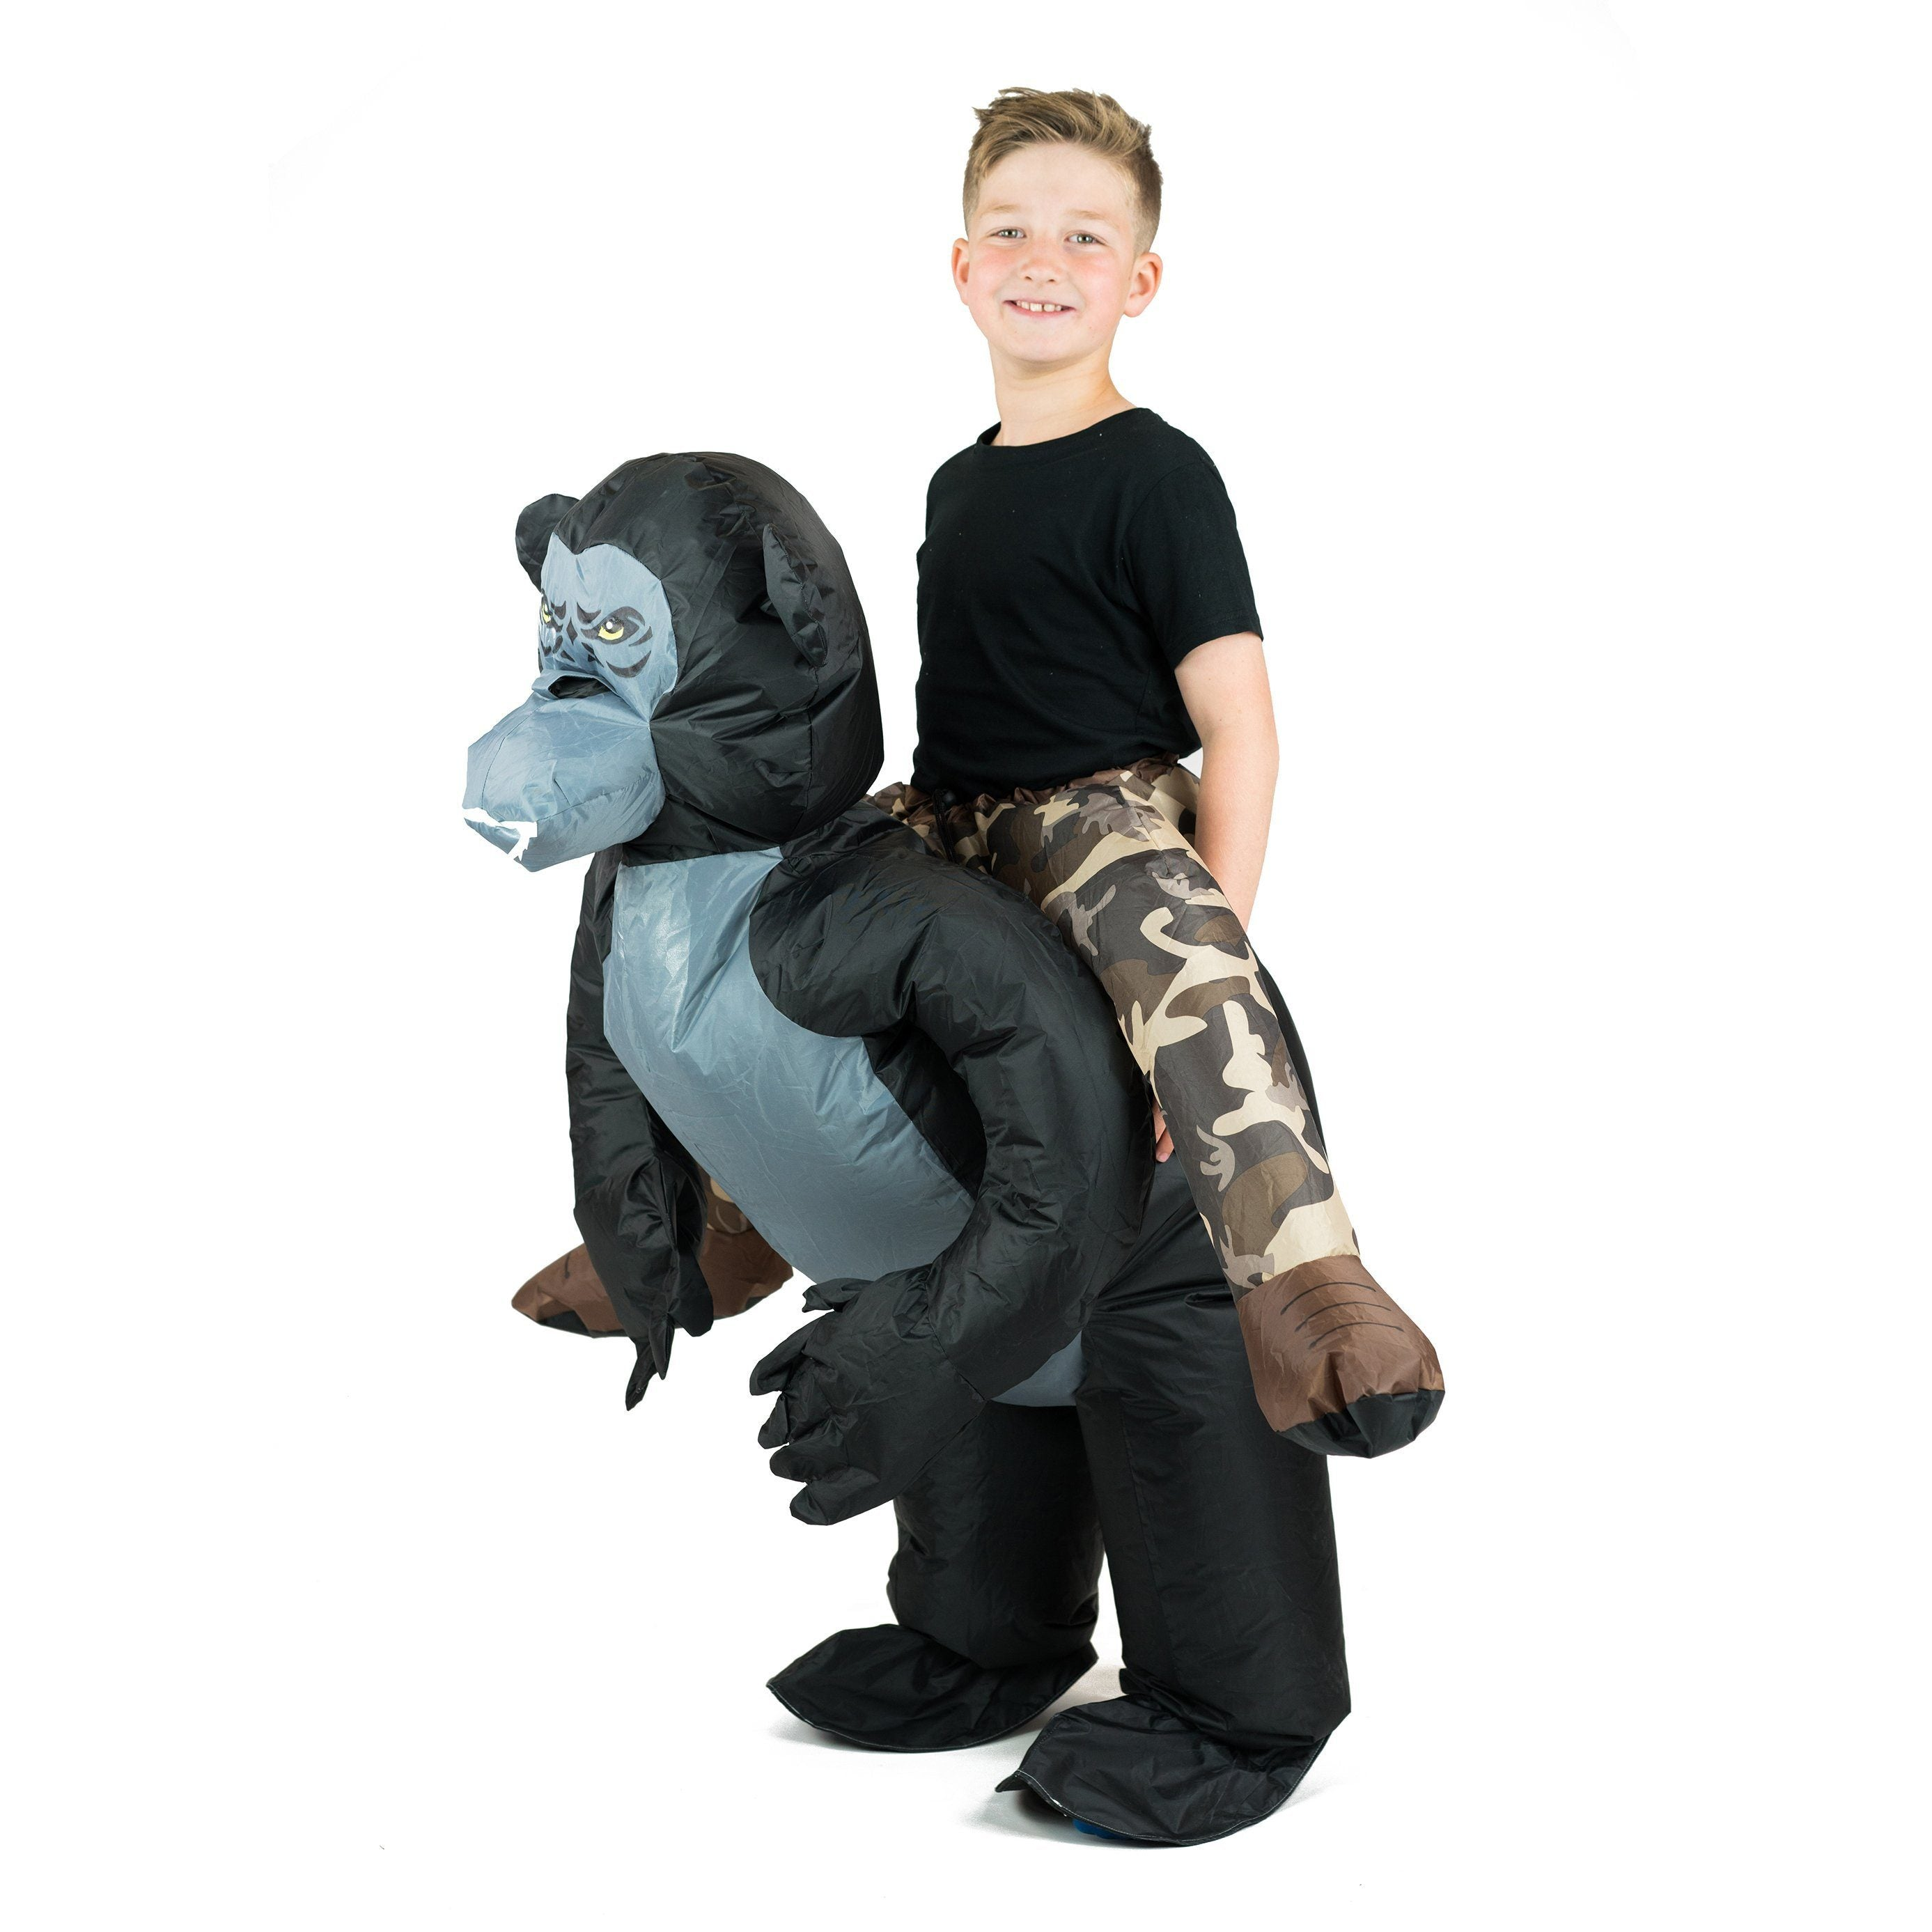 Fancy Dress - Kids Inflatable Gorilla Costume